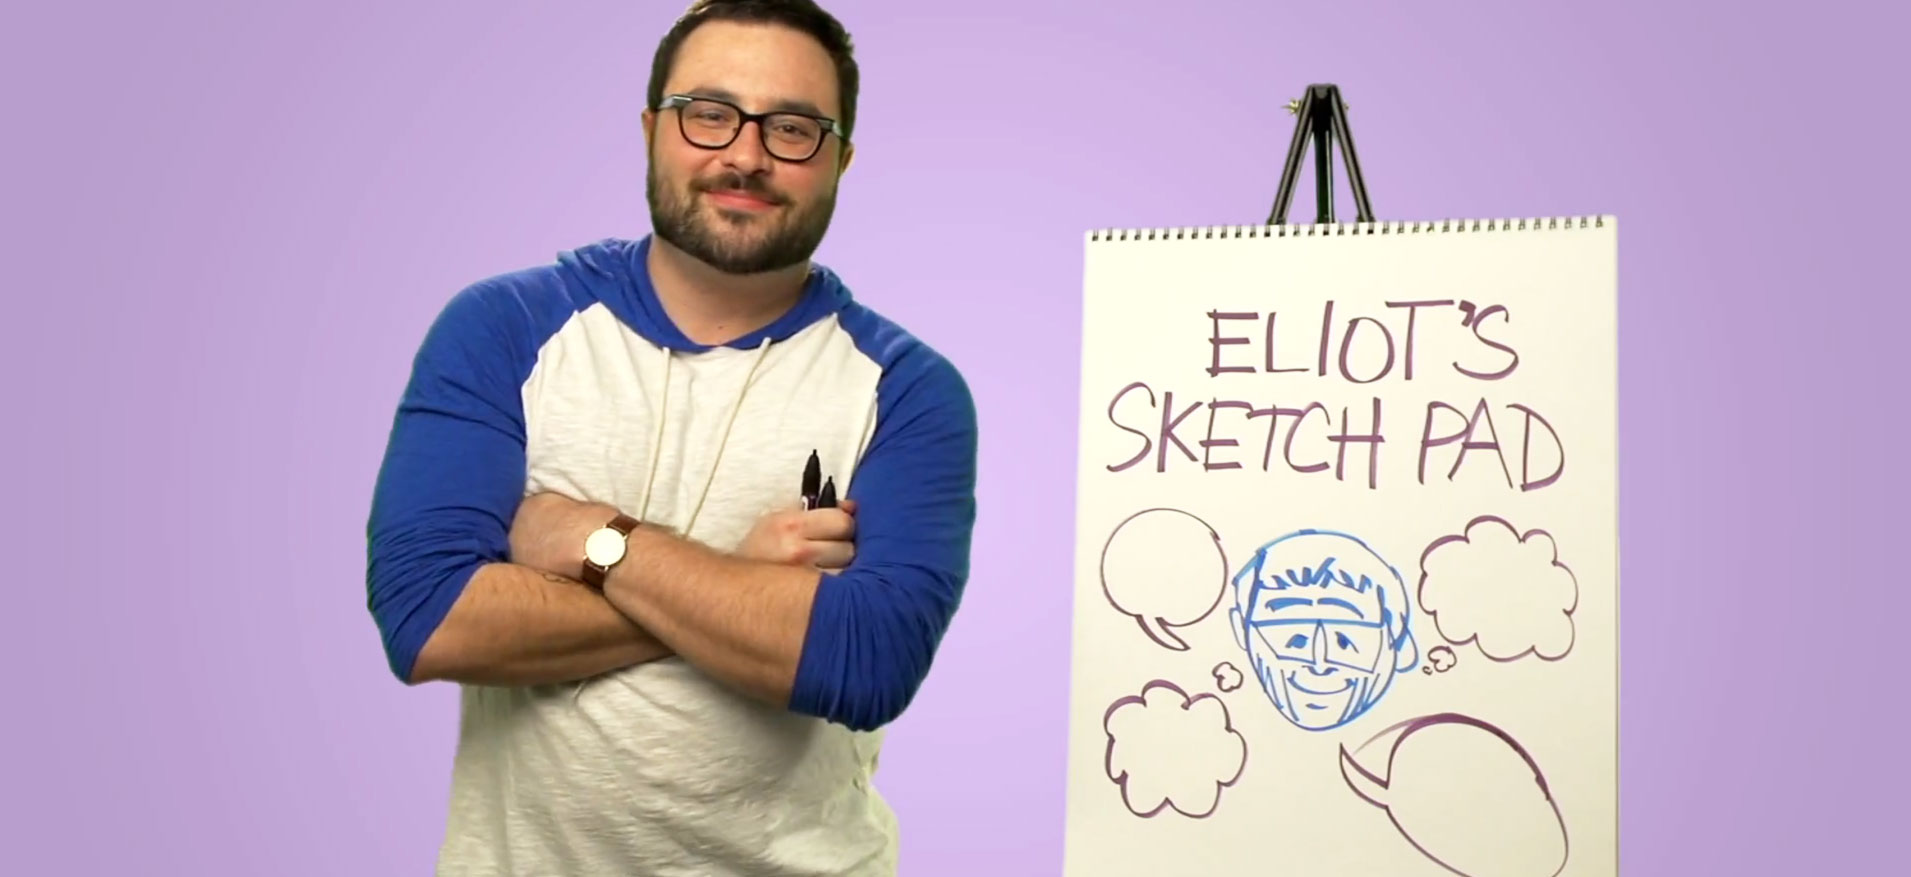 Eliot Glazer Sketch pad